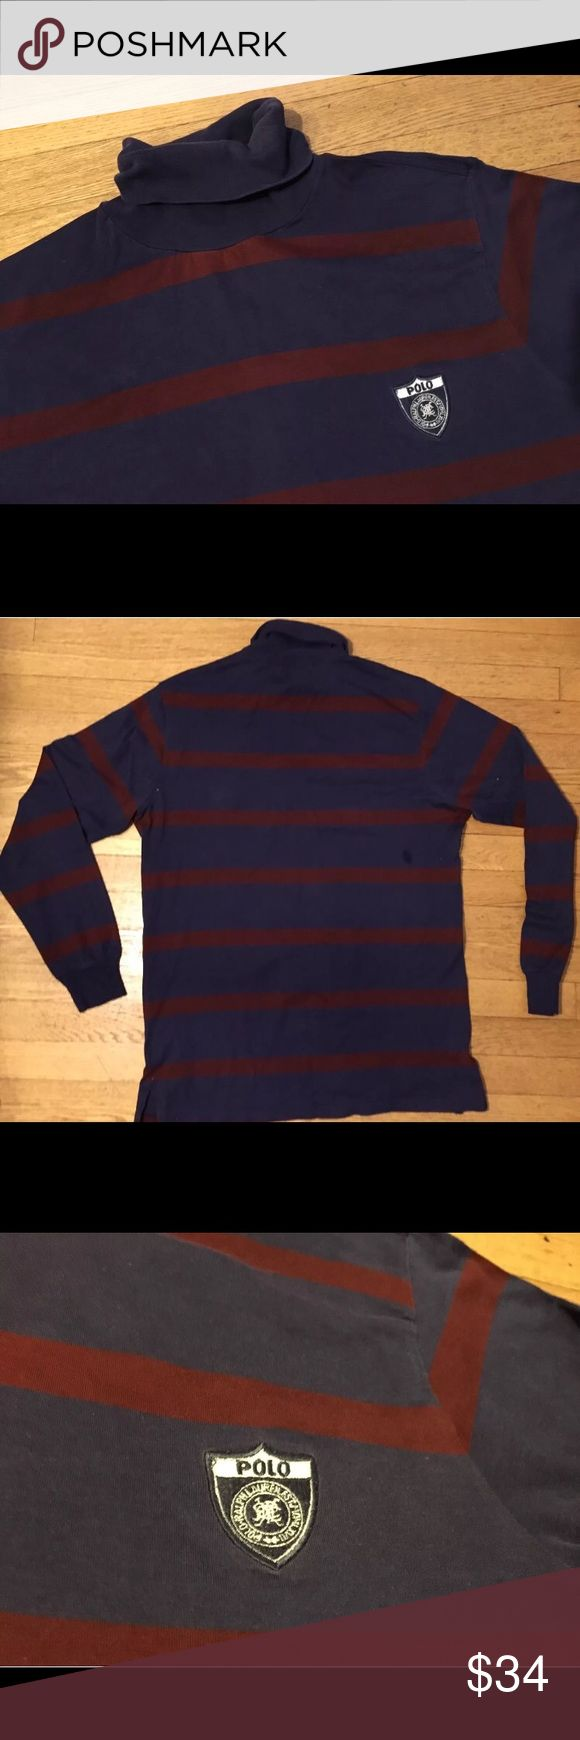 "VTG RALPH LAUREN POLO MENS TURTLENECK SHIRT   L Super nice vintage 1990s polo Ralph Lauren fine cotton turtleneck t shirt. It has the iconic crest in the chest and has a nice old school blue and red striped design. It's clean with no rips or holes- there is a superficial mark at the fold in the turtleneck but nothing major. From pit to pit is 21"" and from under the back fold to the back bottom is 28"" Polo by Ralph Lauren Shirts Tees - Long Sleeve"